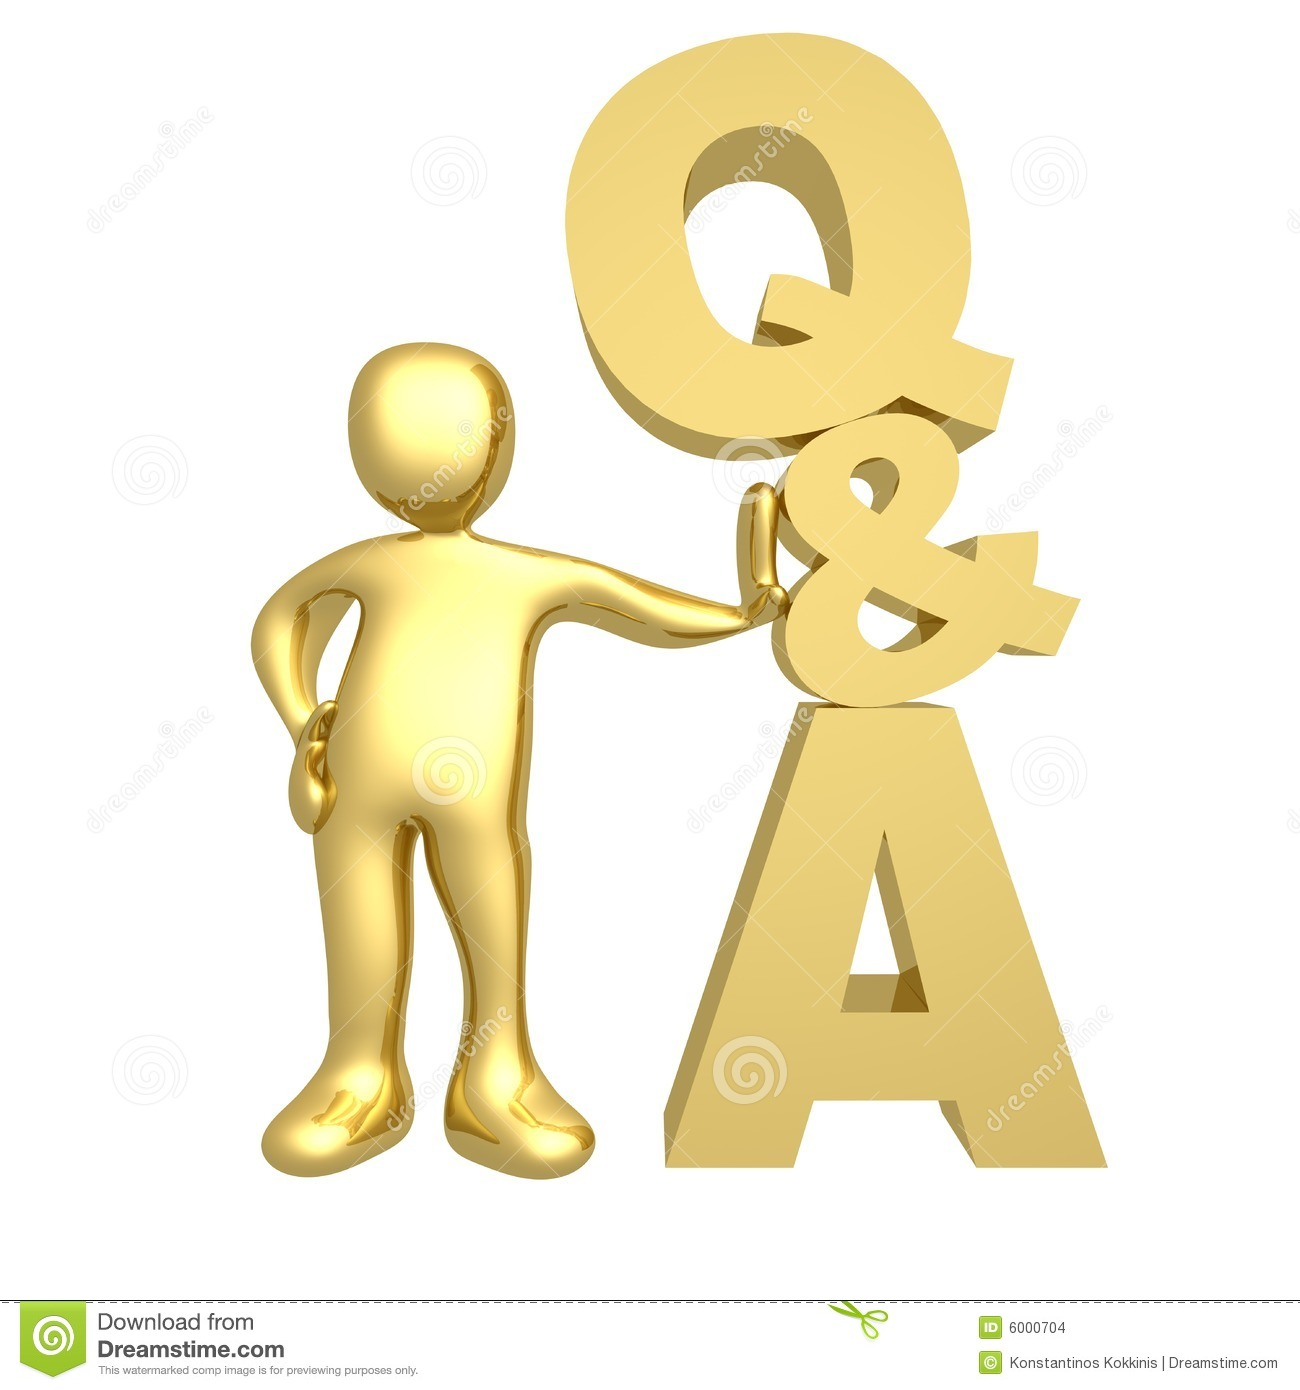 answers clipart - photo #38